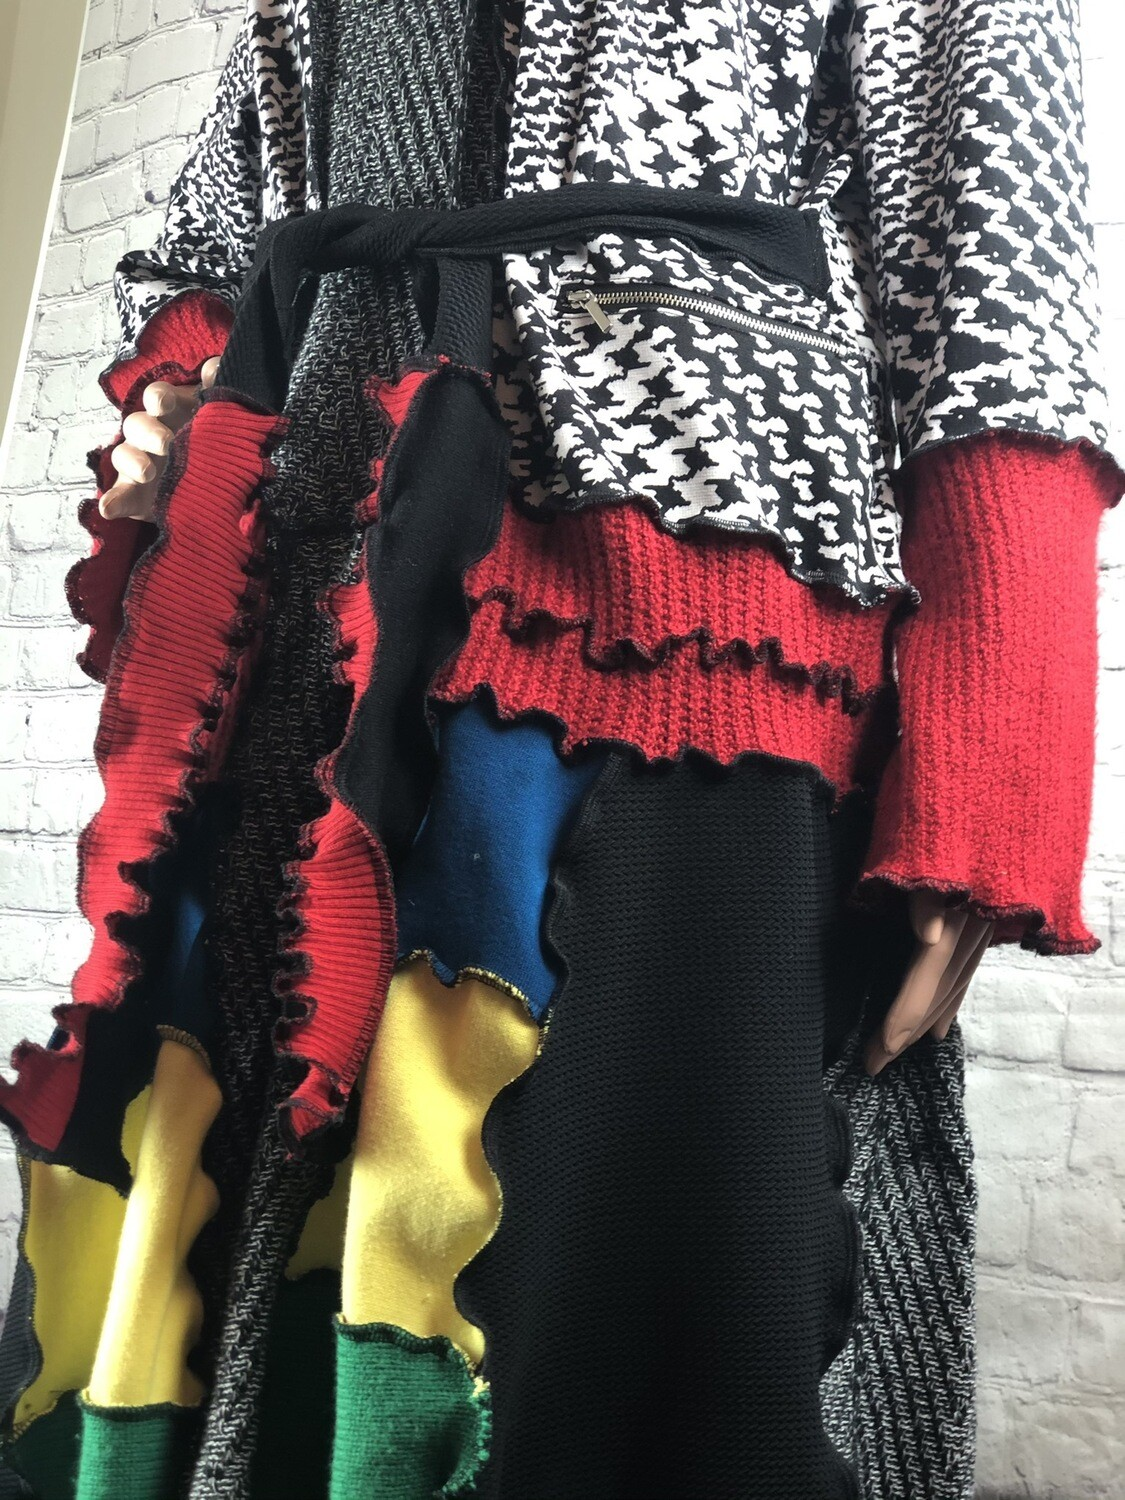 Upcycled Recycled Colorful Sweater Coat S Threads w Buttons at Top and Tie Waist size 2XL